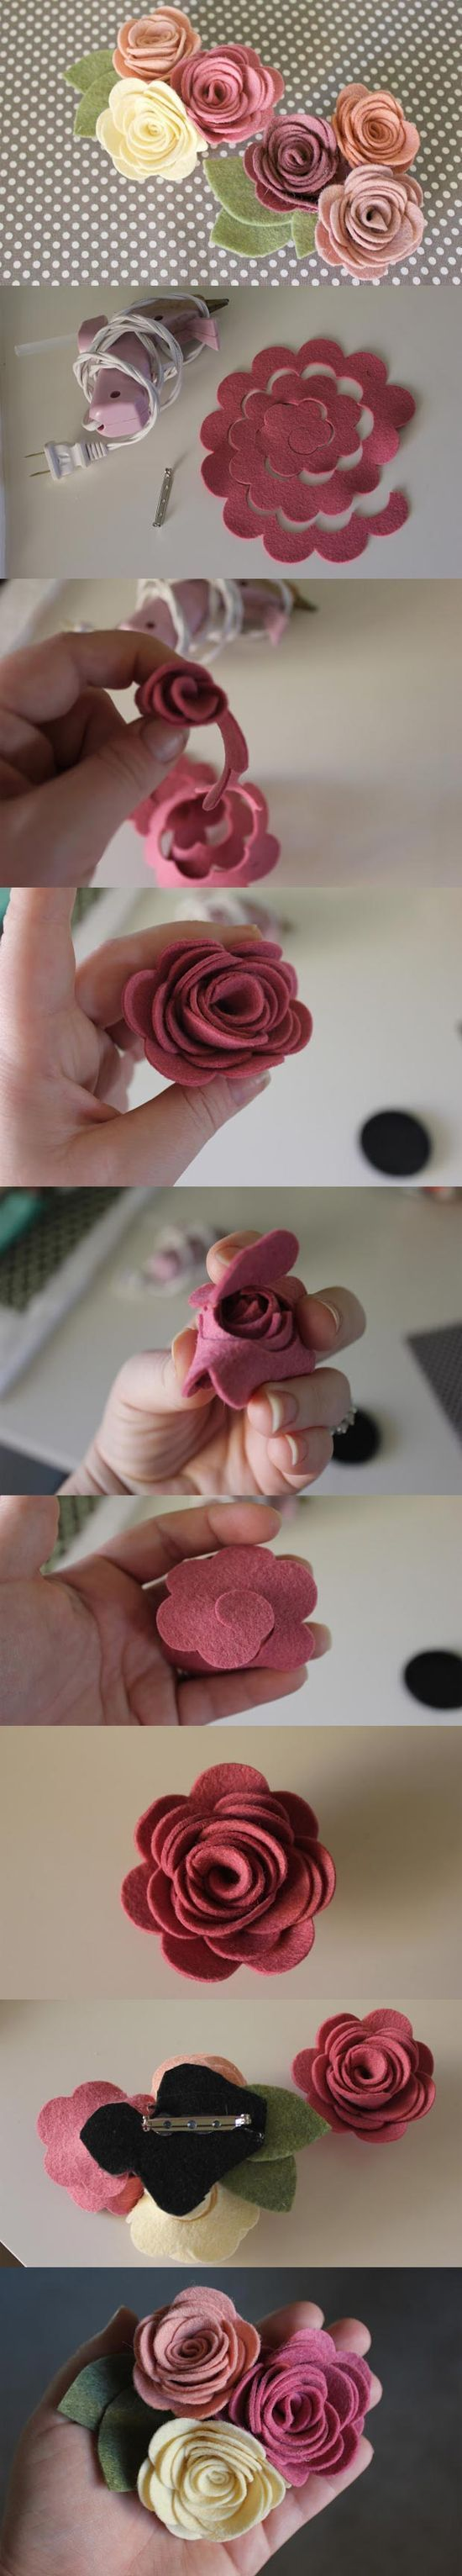 7 Easy DIY Felt Flower Methods – Homemade Craft Decor Project & Top Design Idea - Bored Fast Food (5)